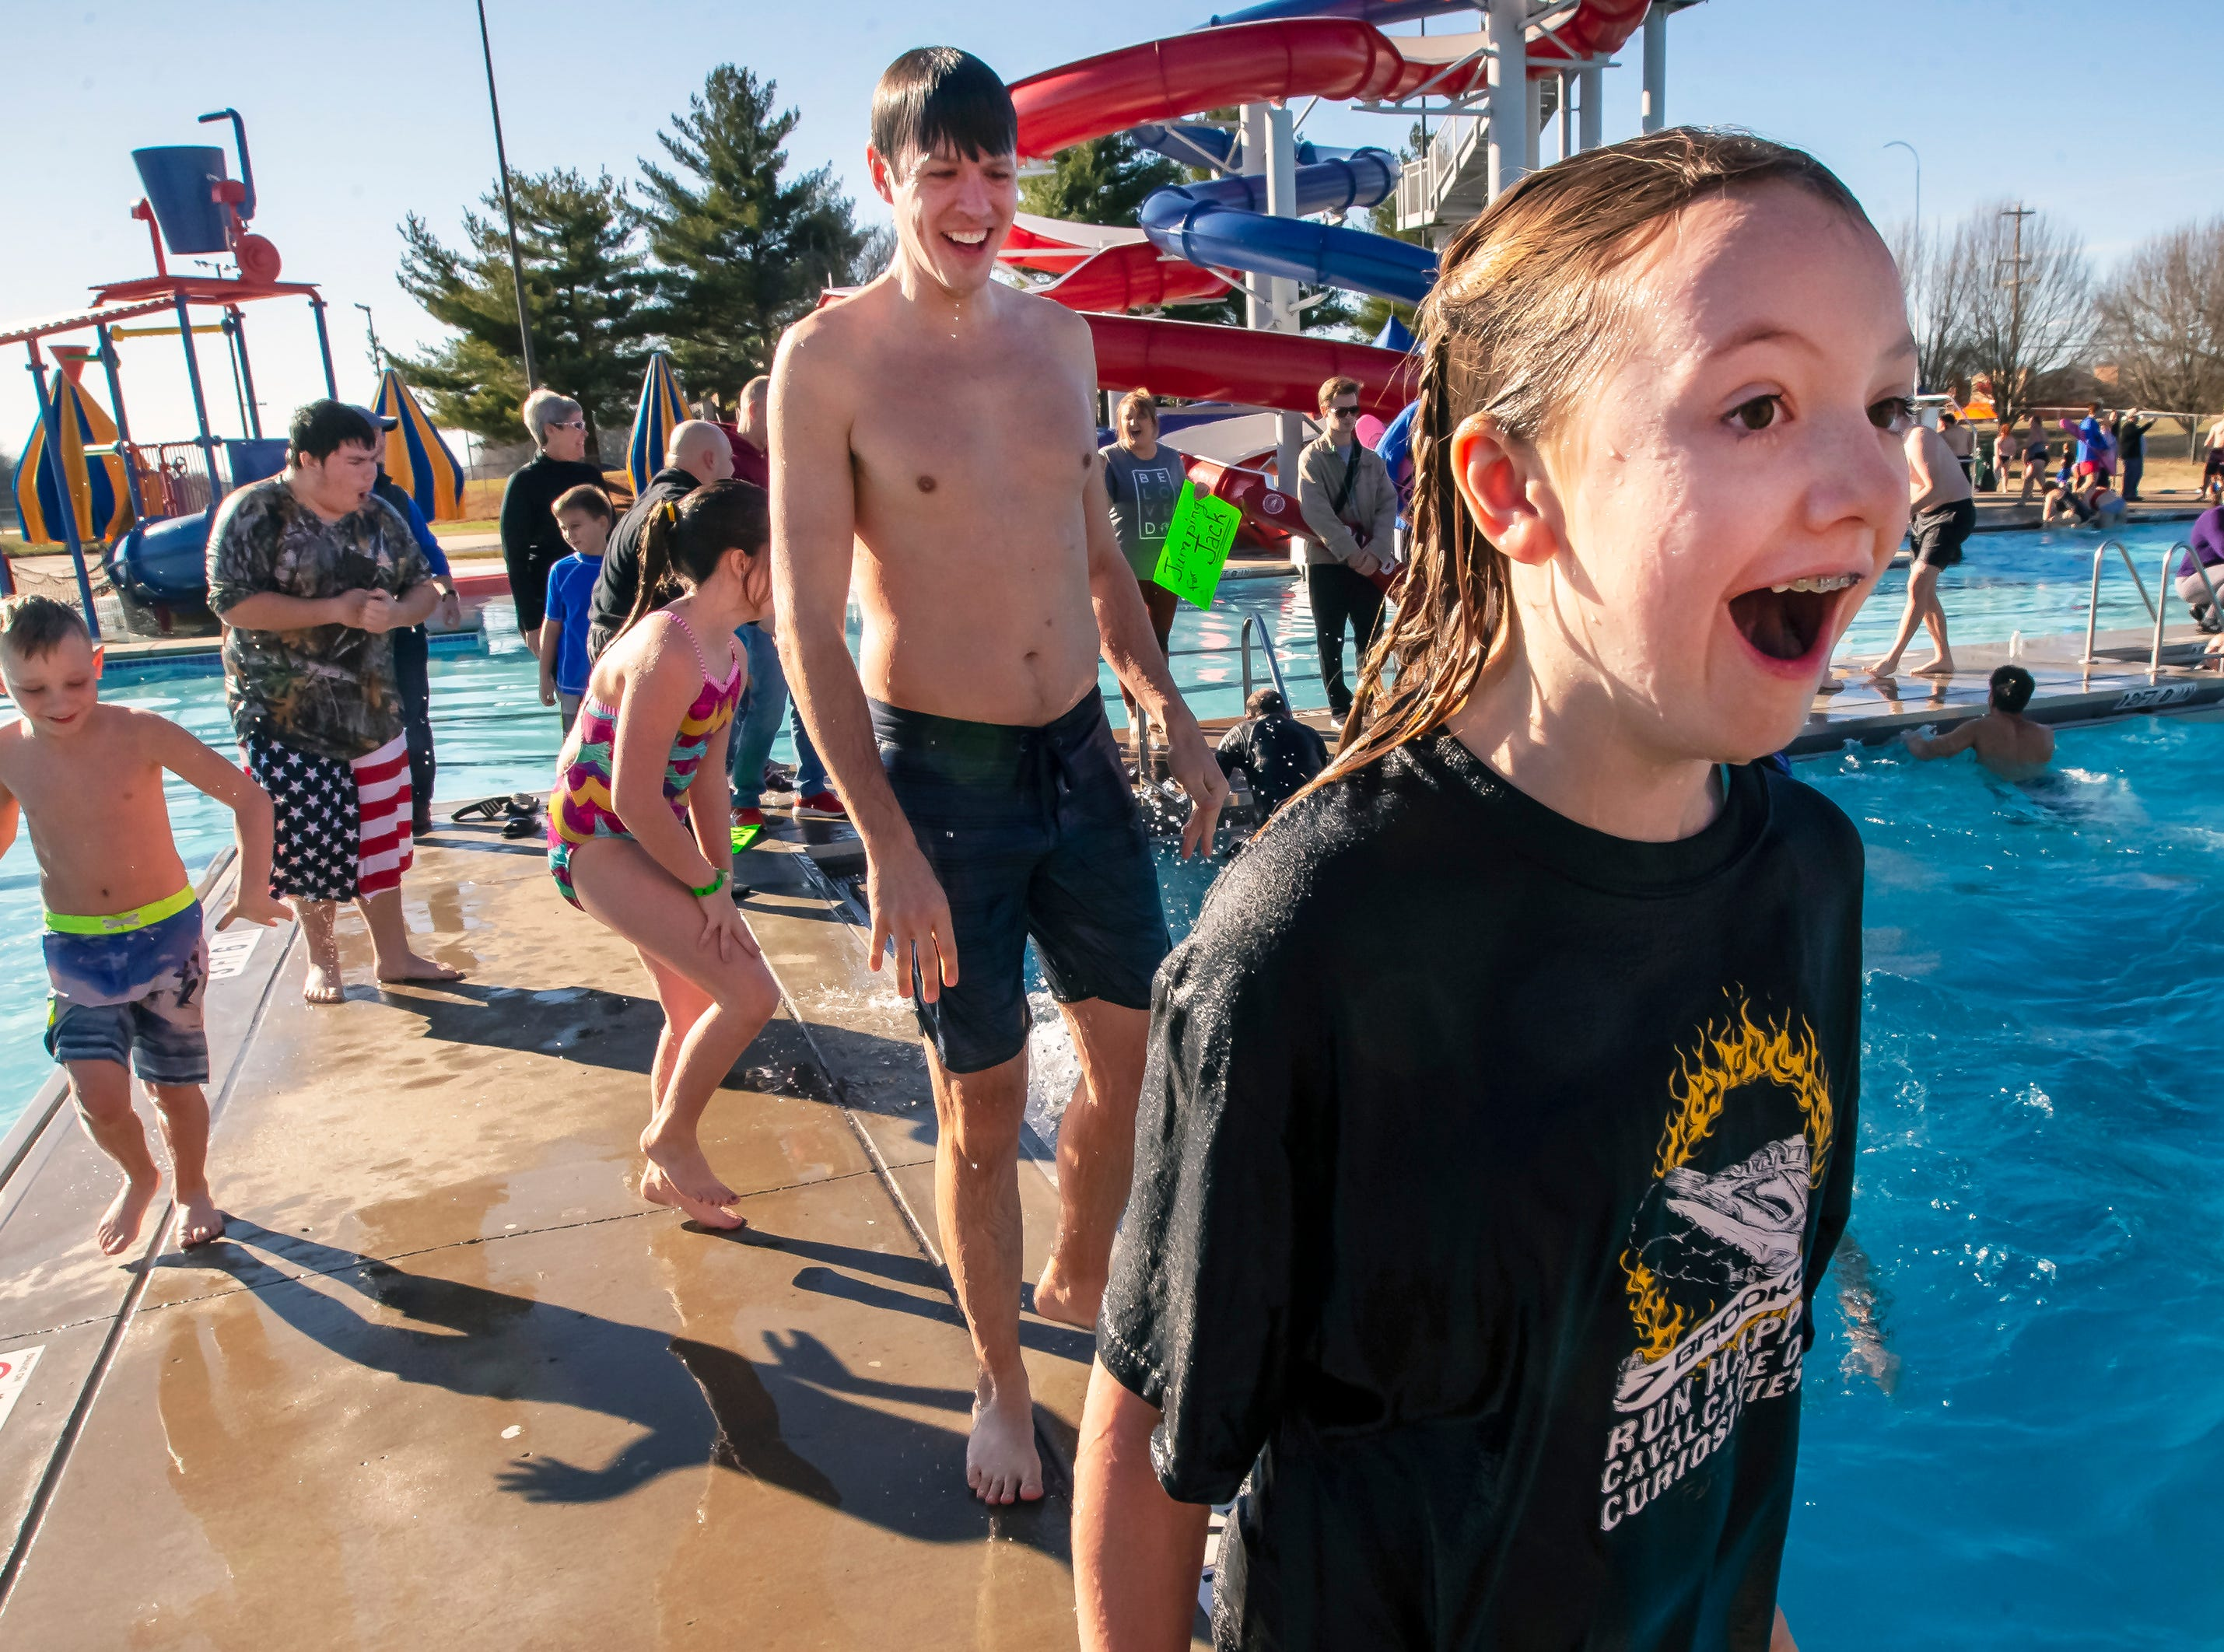 Kenady Walker reacts to the cold water after jumping into the pool at the 17th annual Polar Bear Plunge held at SportsCom Jan. 5, 2019.